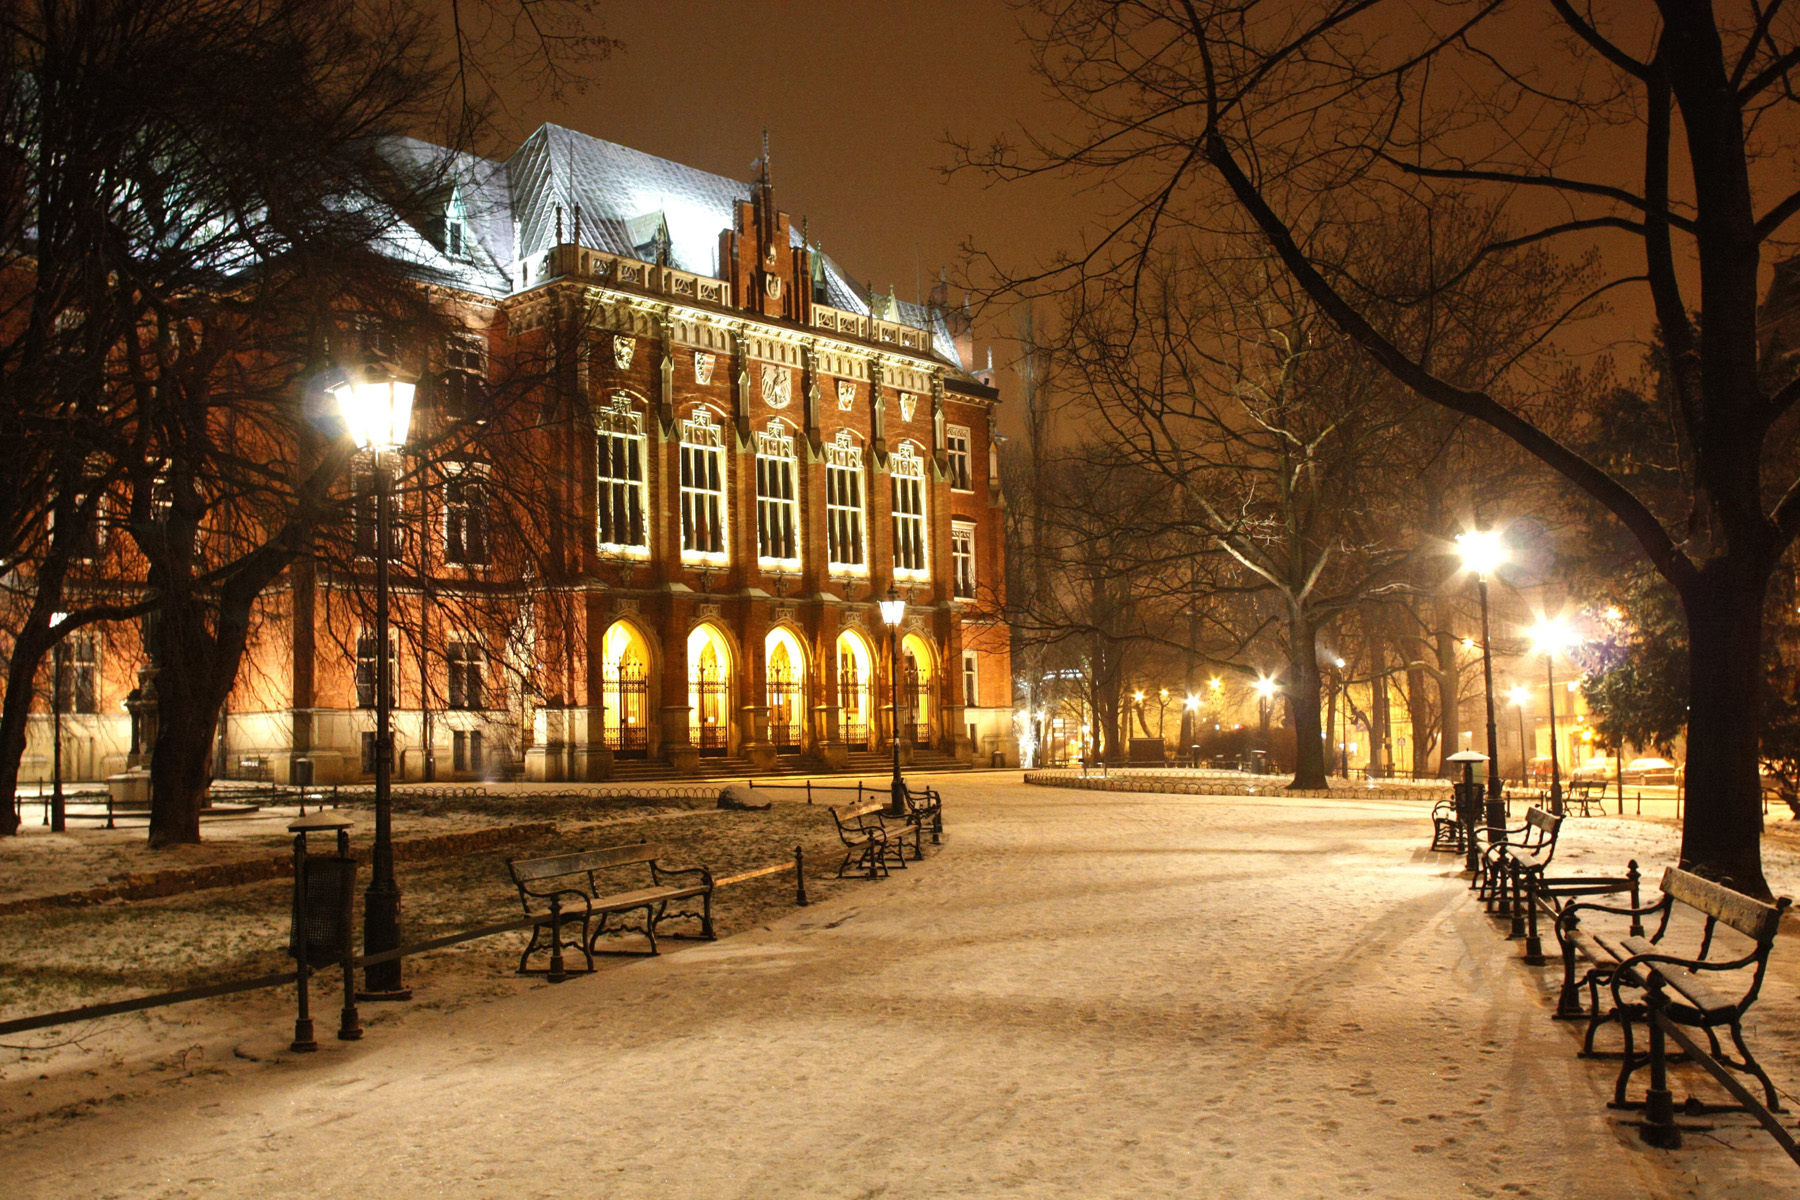 European-style buildings and street trees 51504